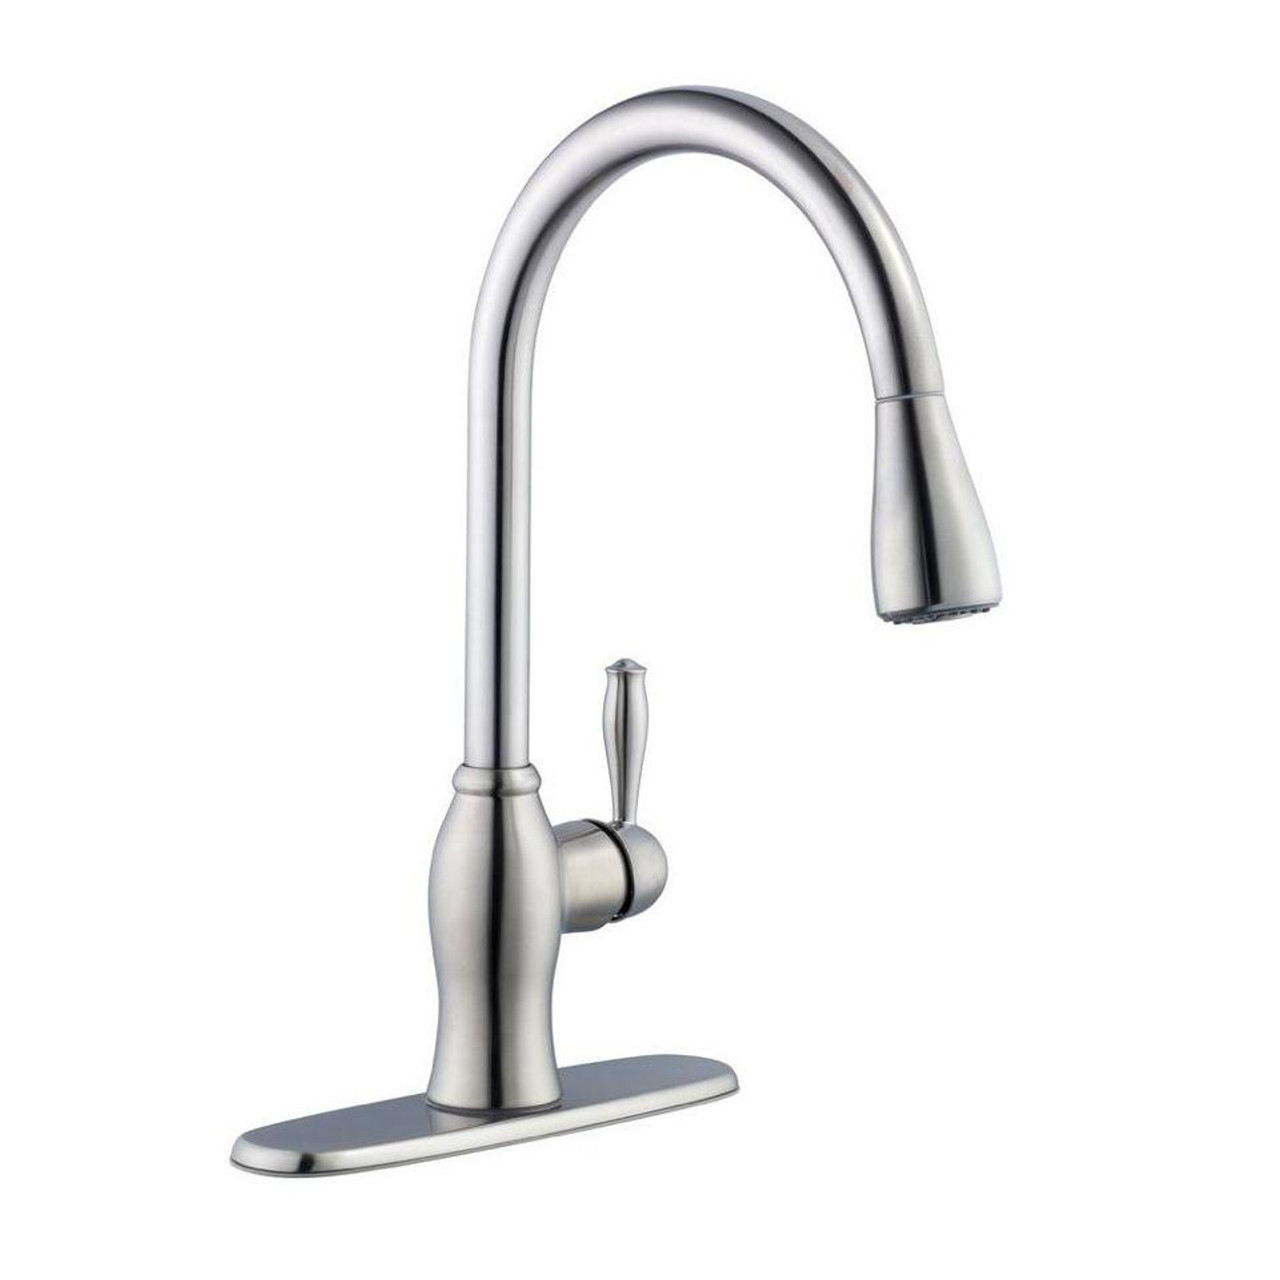 1050 Series Single-Handle Pull-Down Sprayer Kitchen Faucet in Stainless Steel (PE-577608)